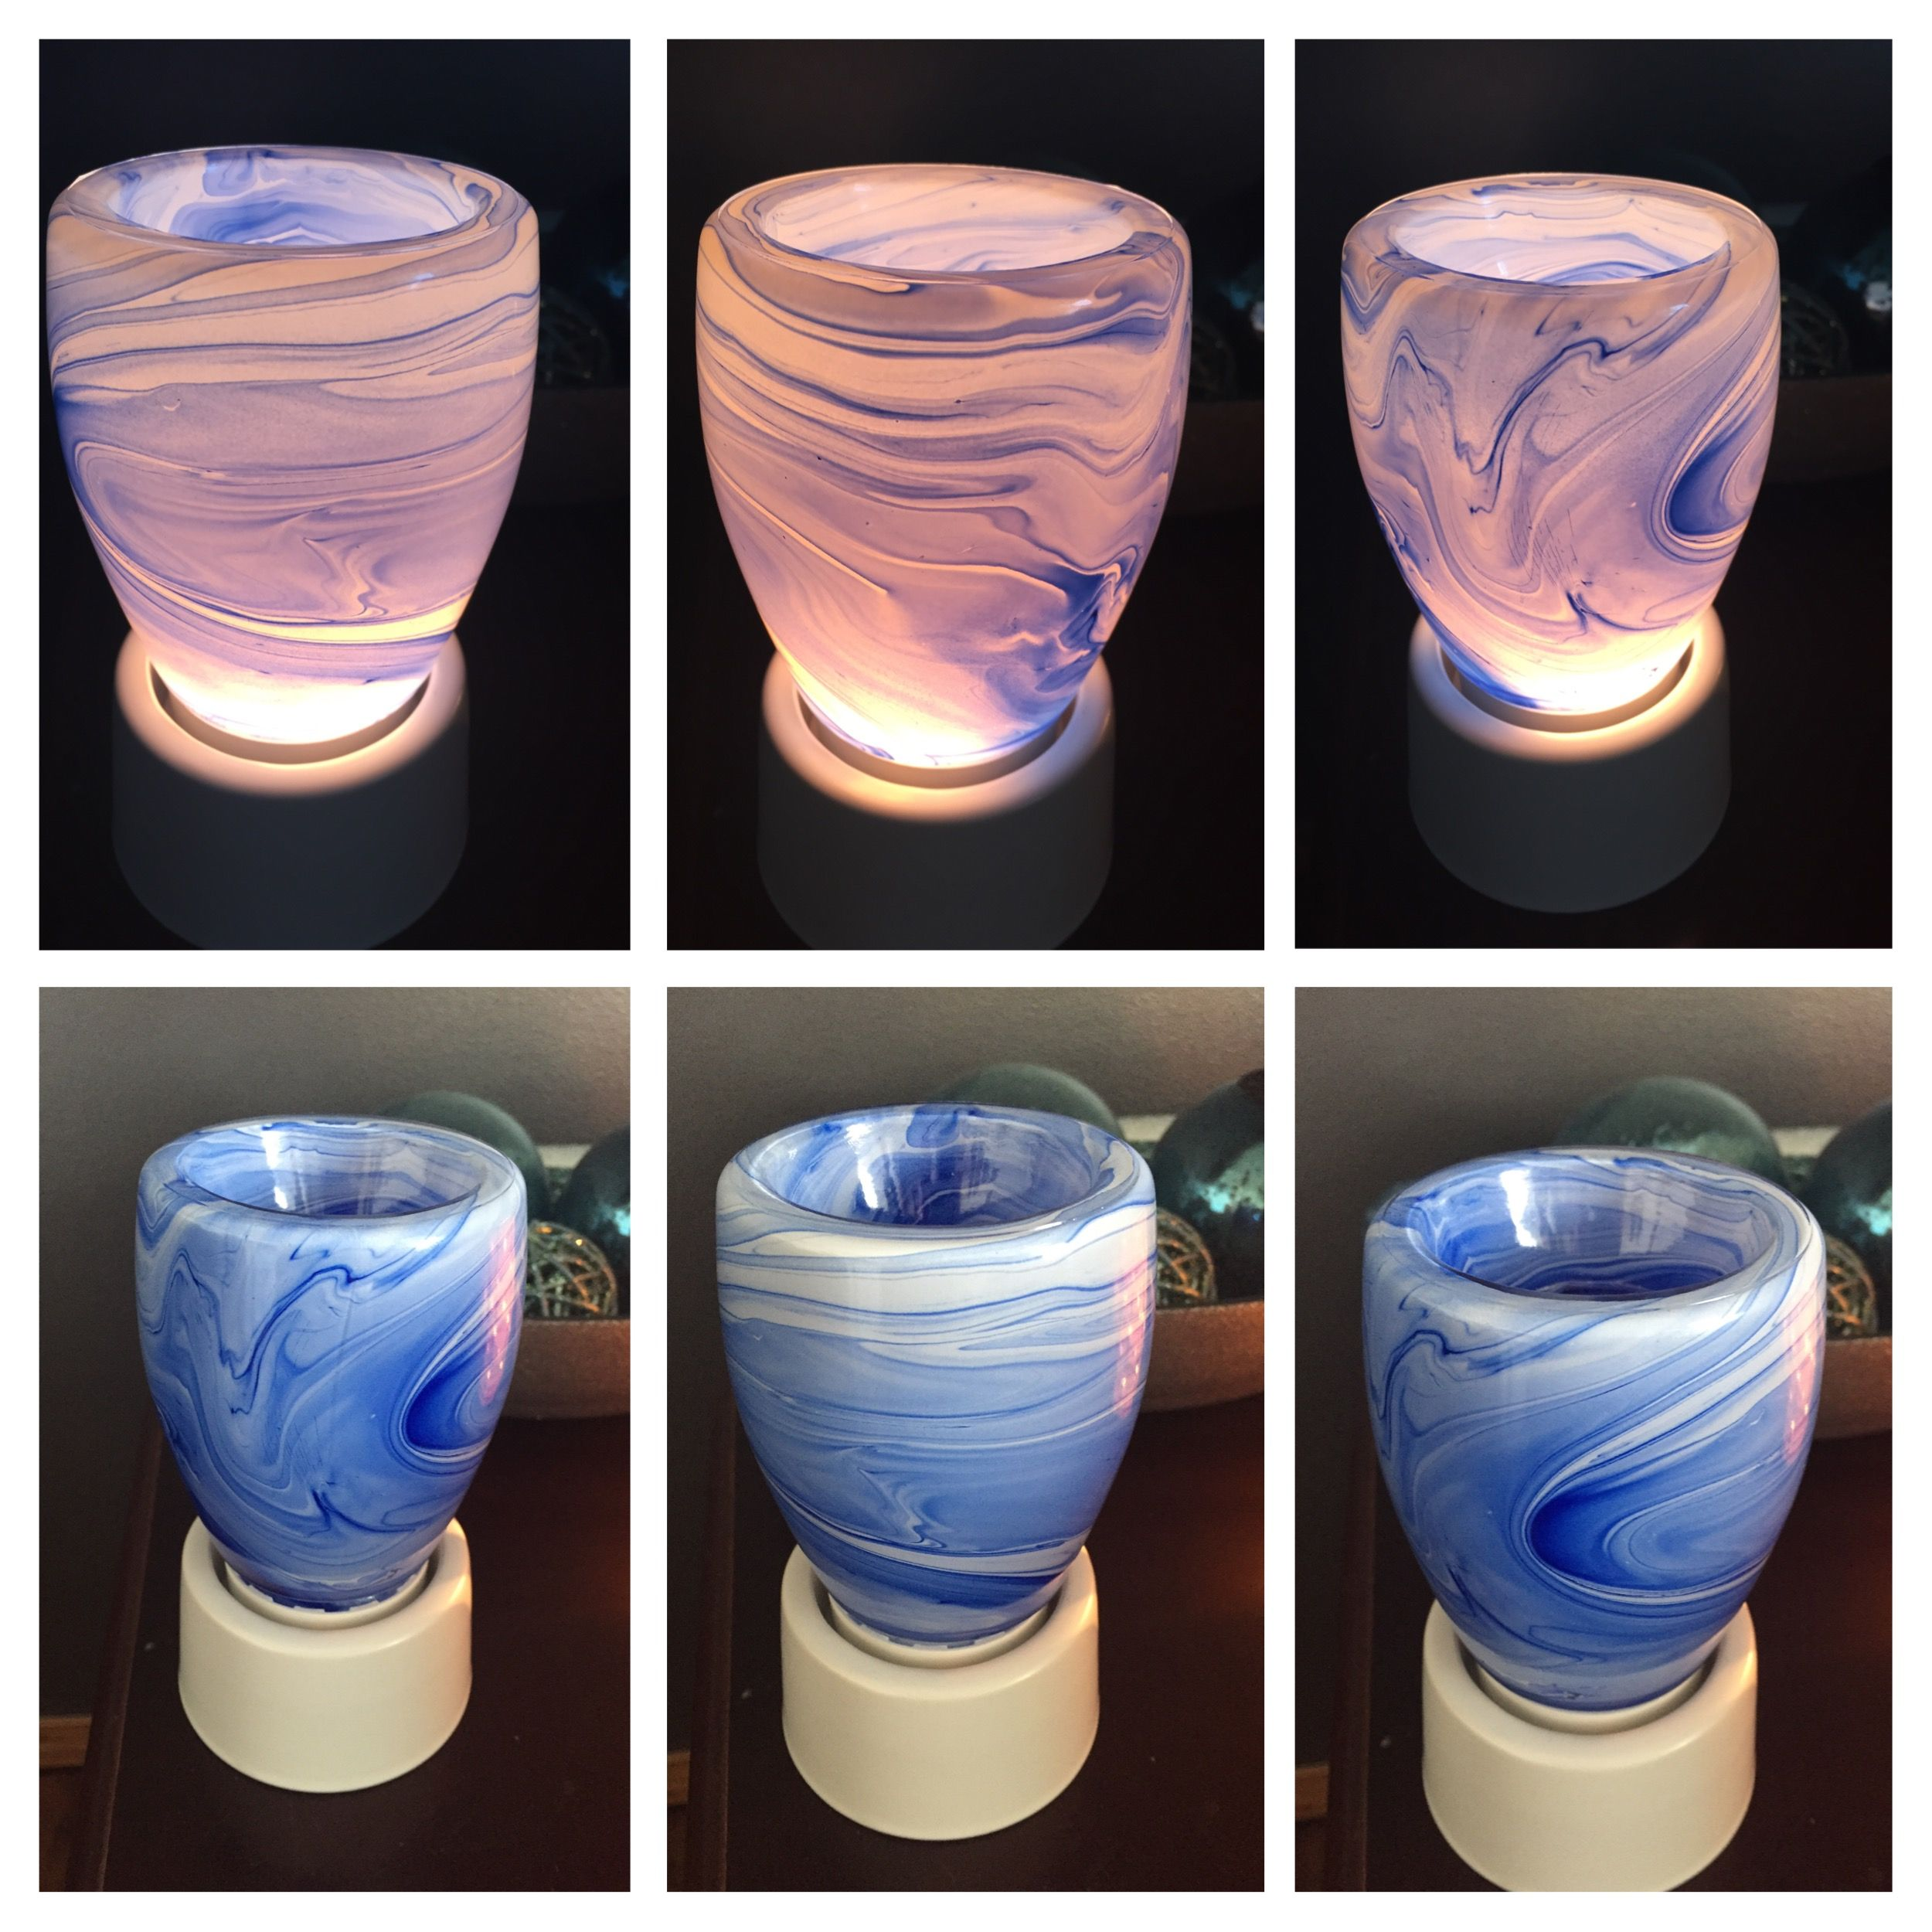 Blue Watercolour Scentsy Nightlight On Nightlight Base Sopretty